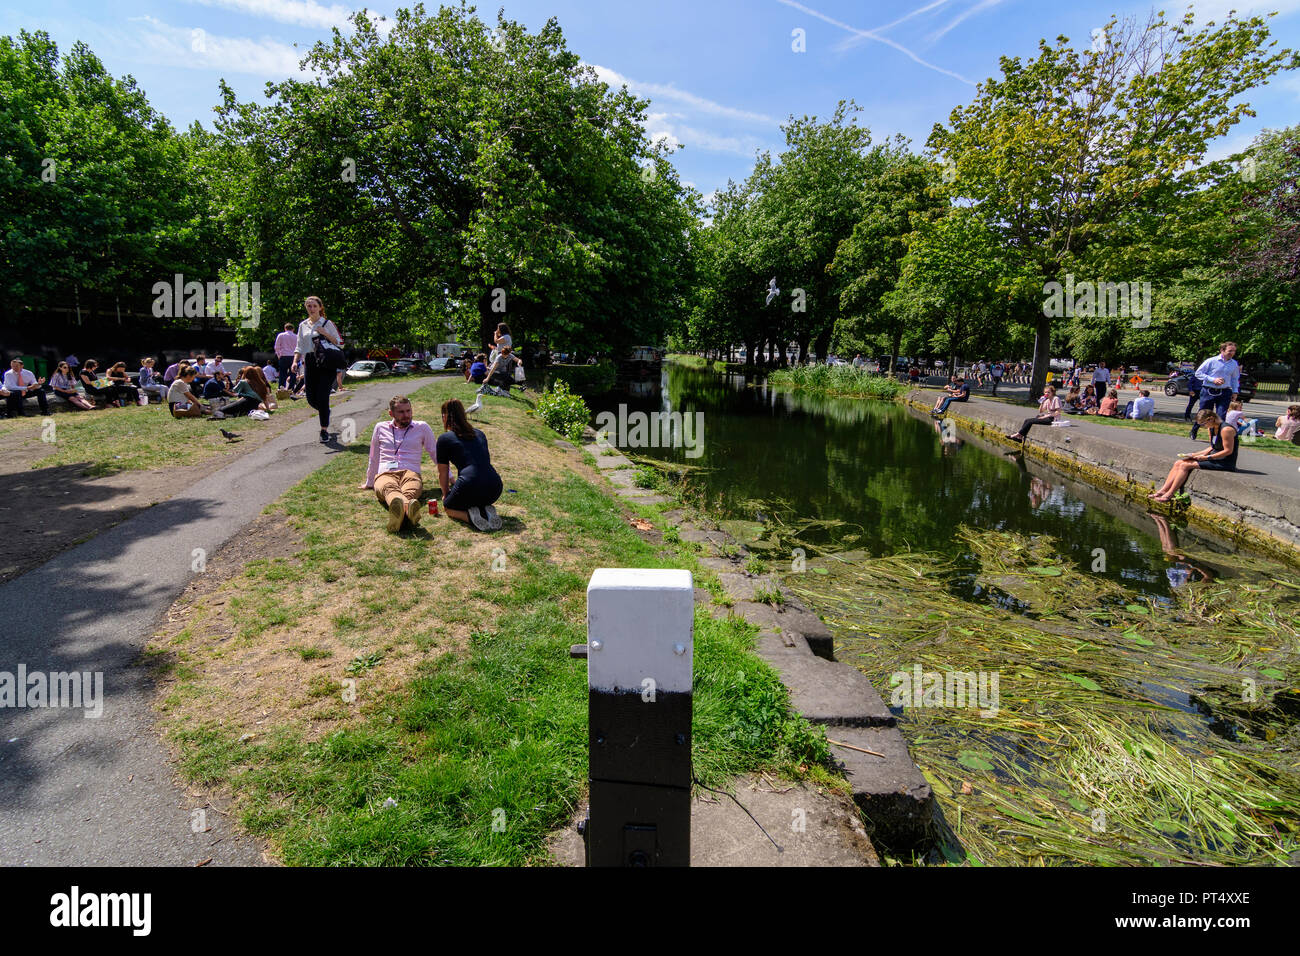 People enjoying the warm summer of 2018 during lunch time on Wilton Terrace near the Grand Canal in Dublin, Ireland - Stock Image